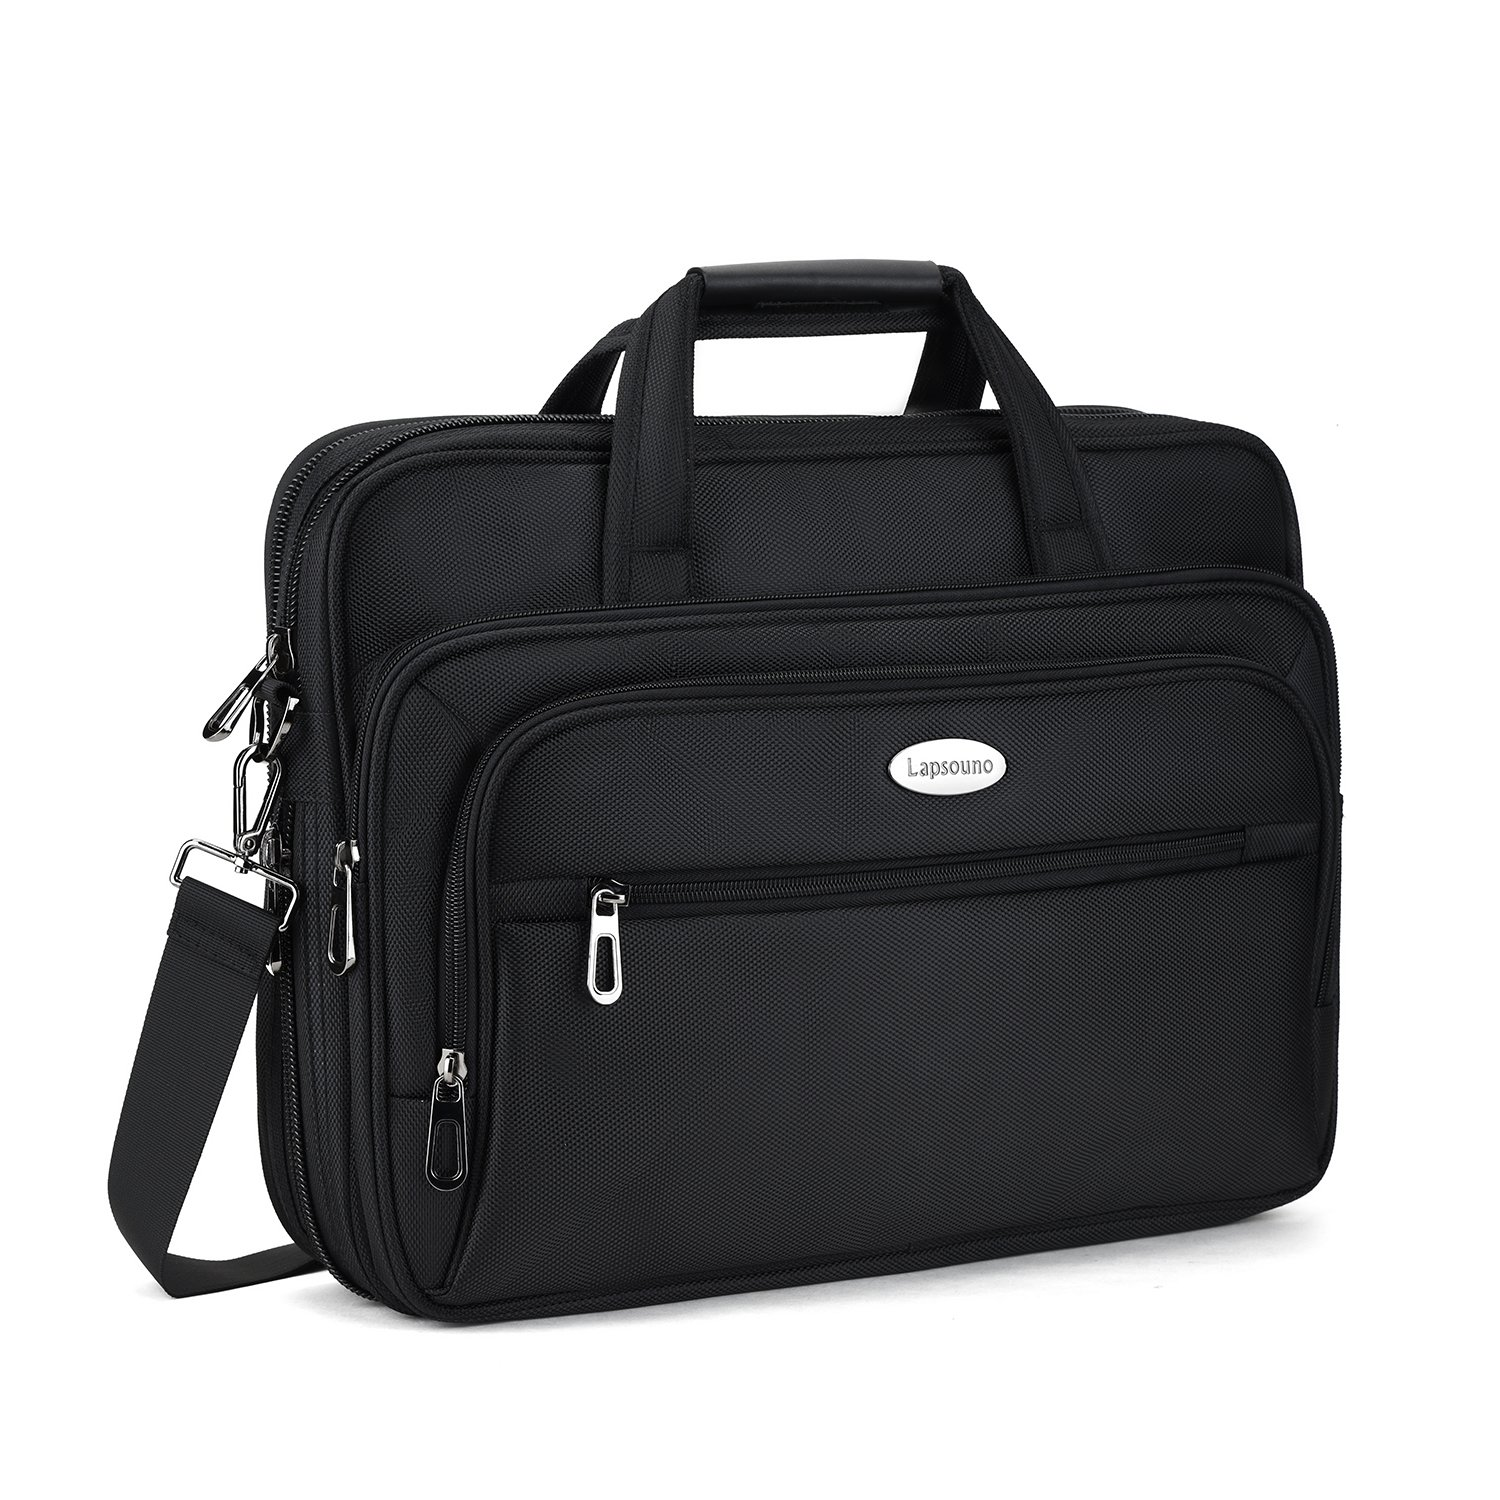 15.6 inch Laptop Briefcase, Expandable Large Shoulder Bag with Adjustable Shoulder Strap for Business Travel College Office Multi-function Shockproof Case Waterproof Messenger Handbag